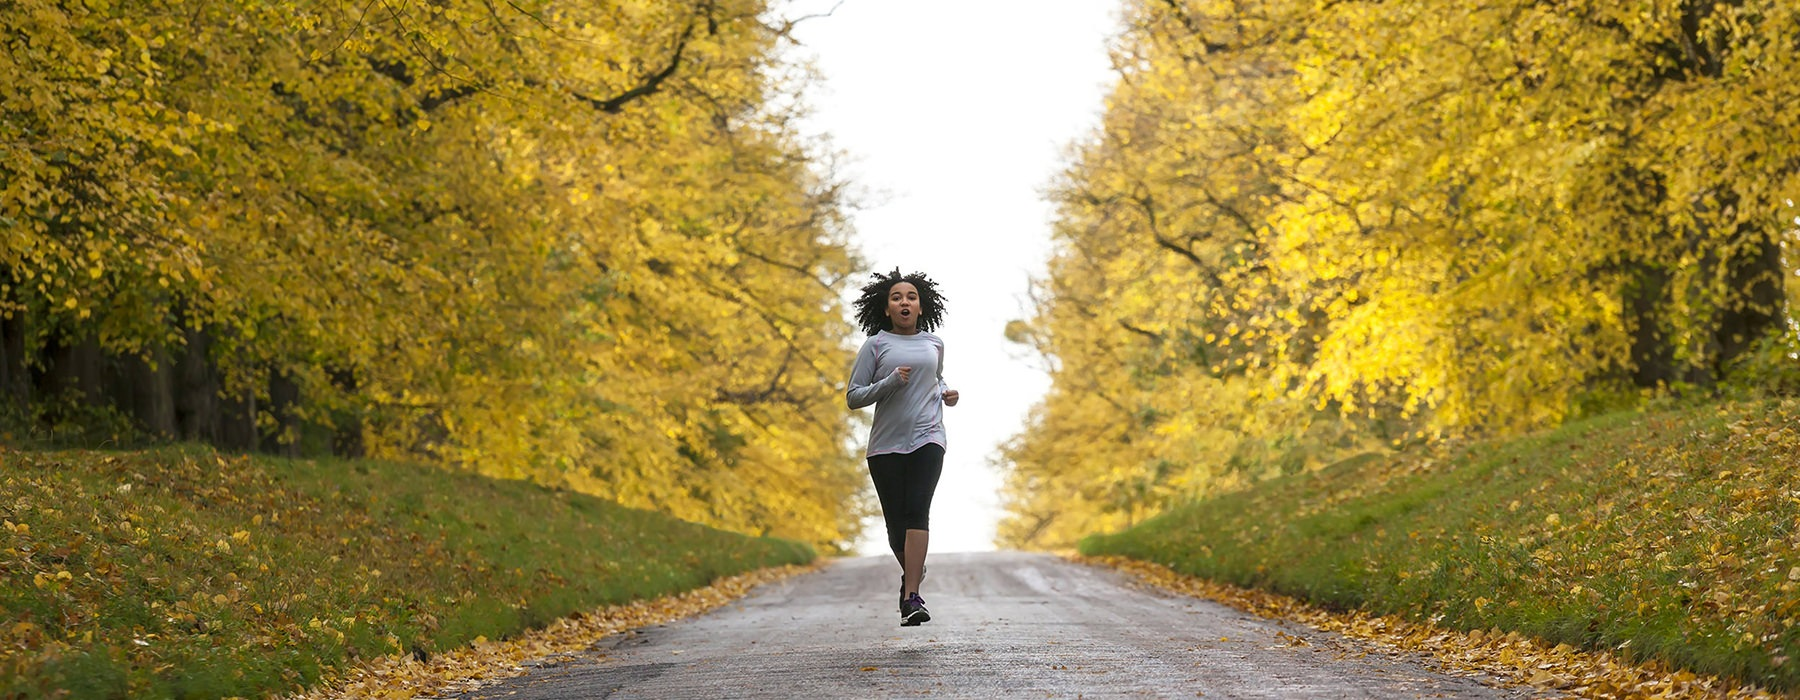 woman running on paved trial